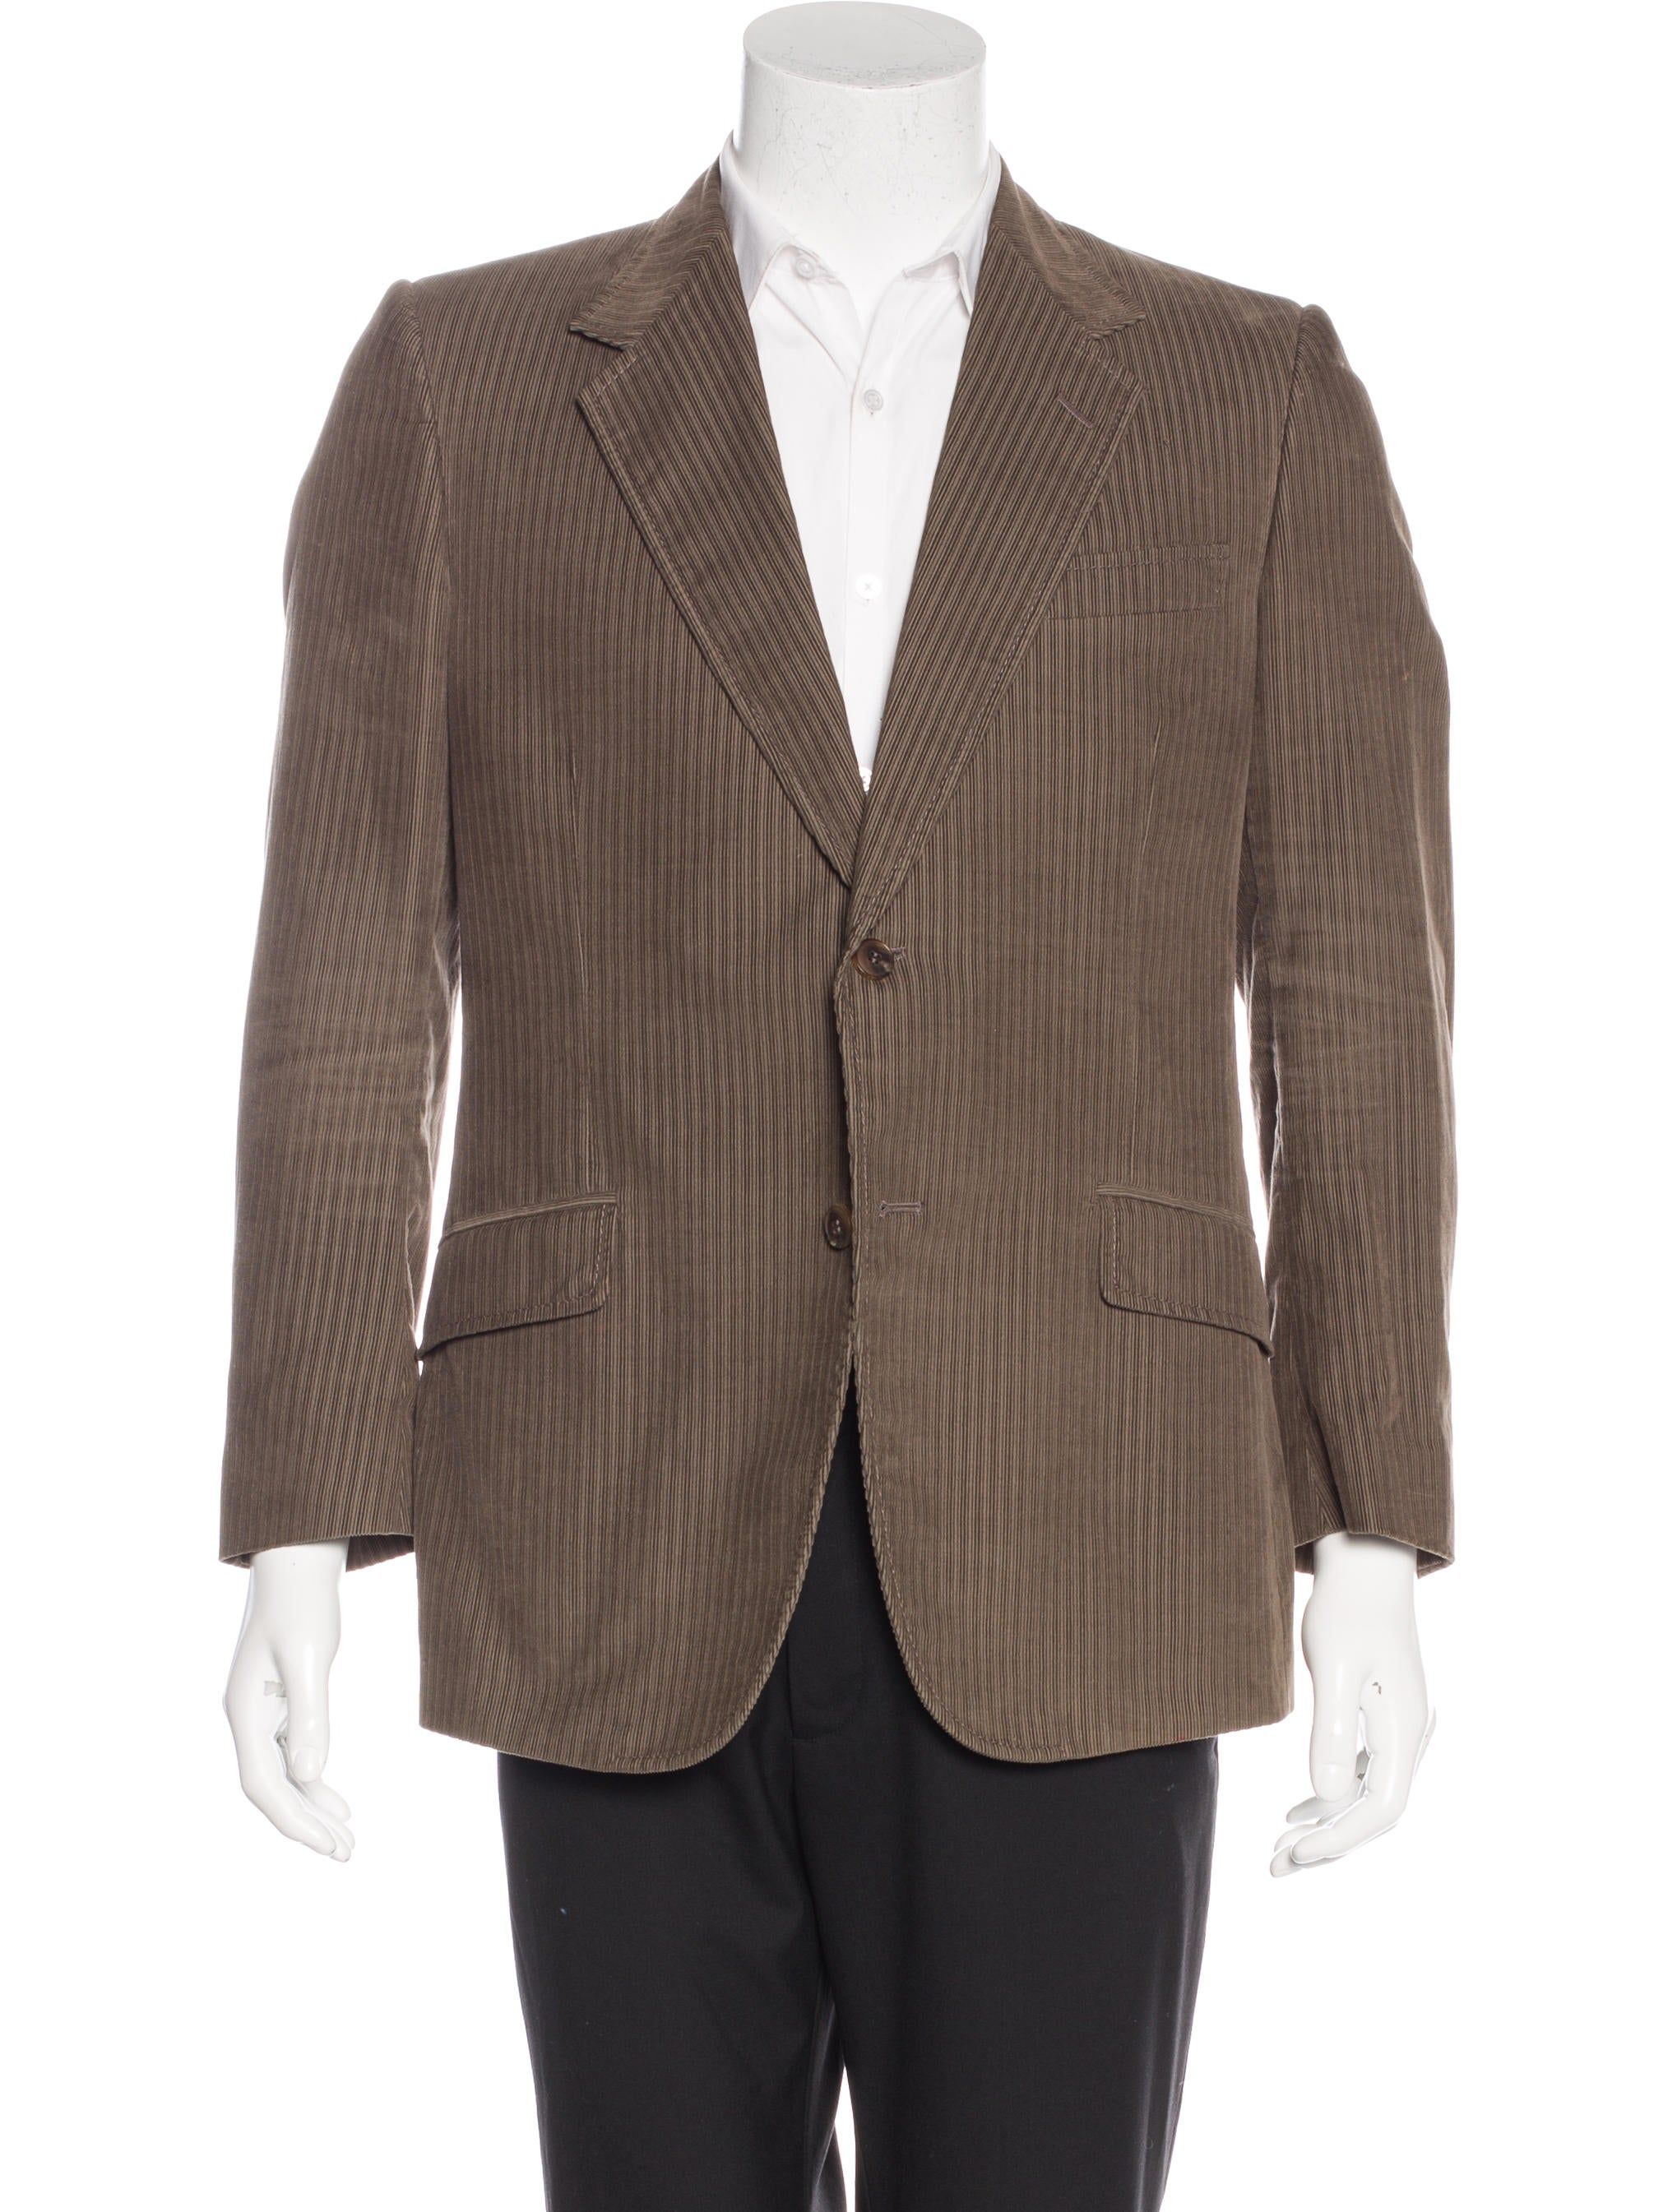 Gucci Corduroy Sport Coat - Clothing - GUC134614 | The RealReal